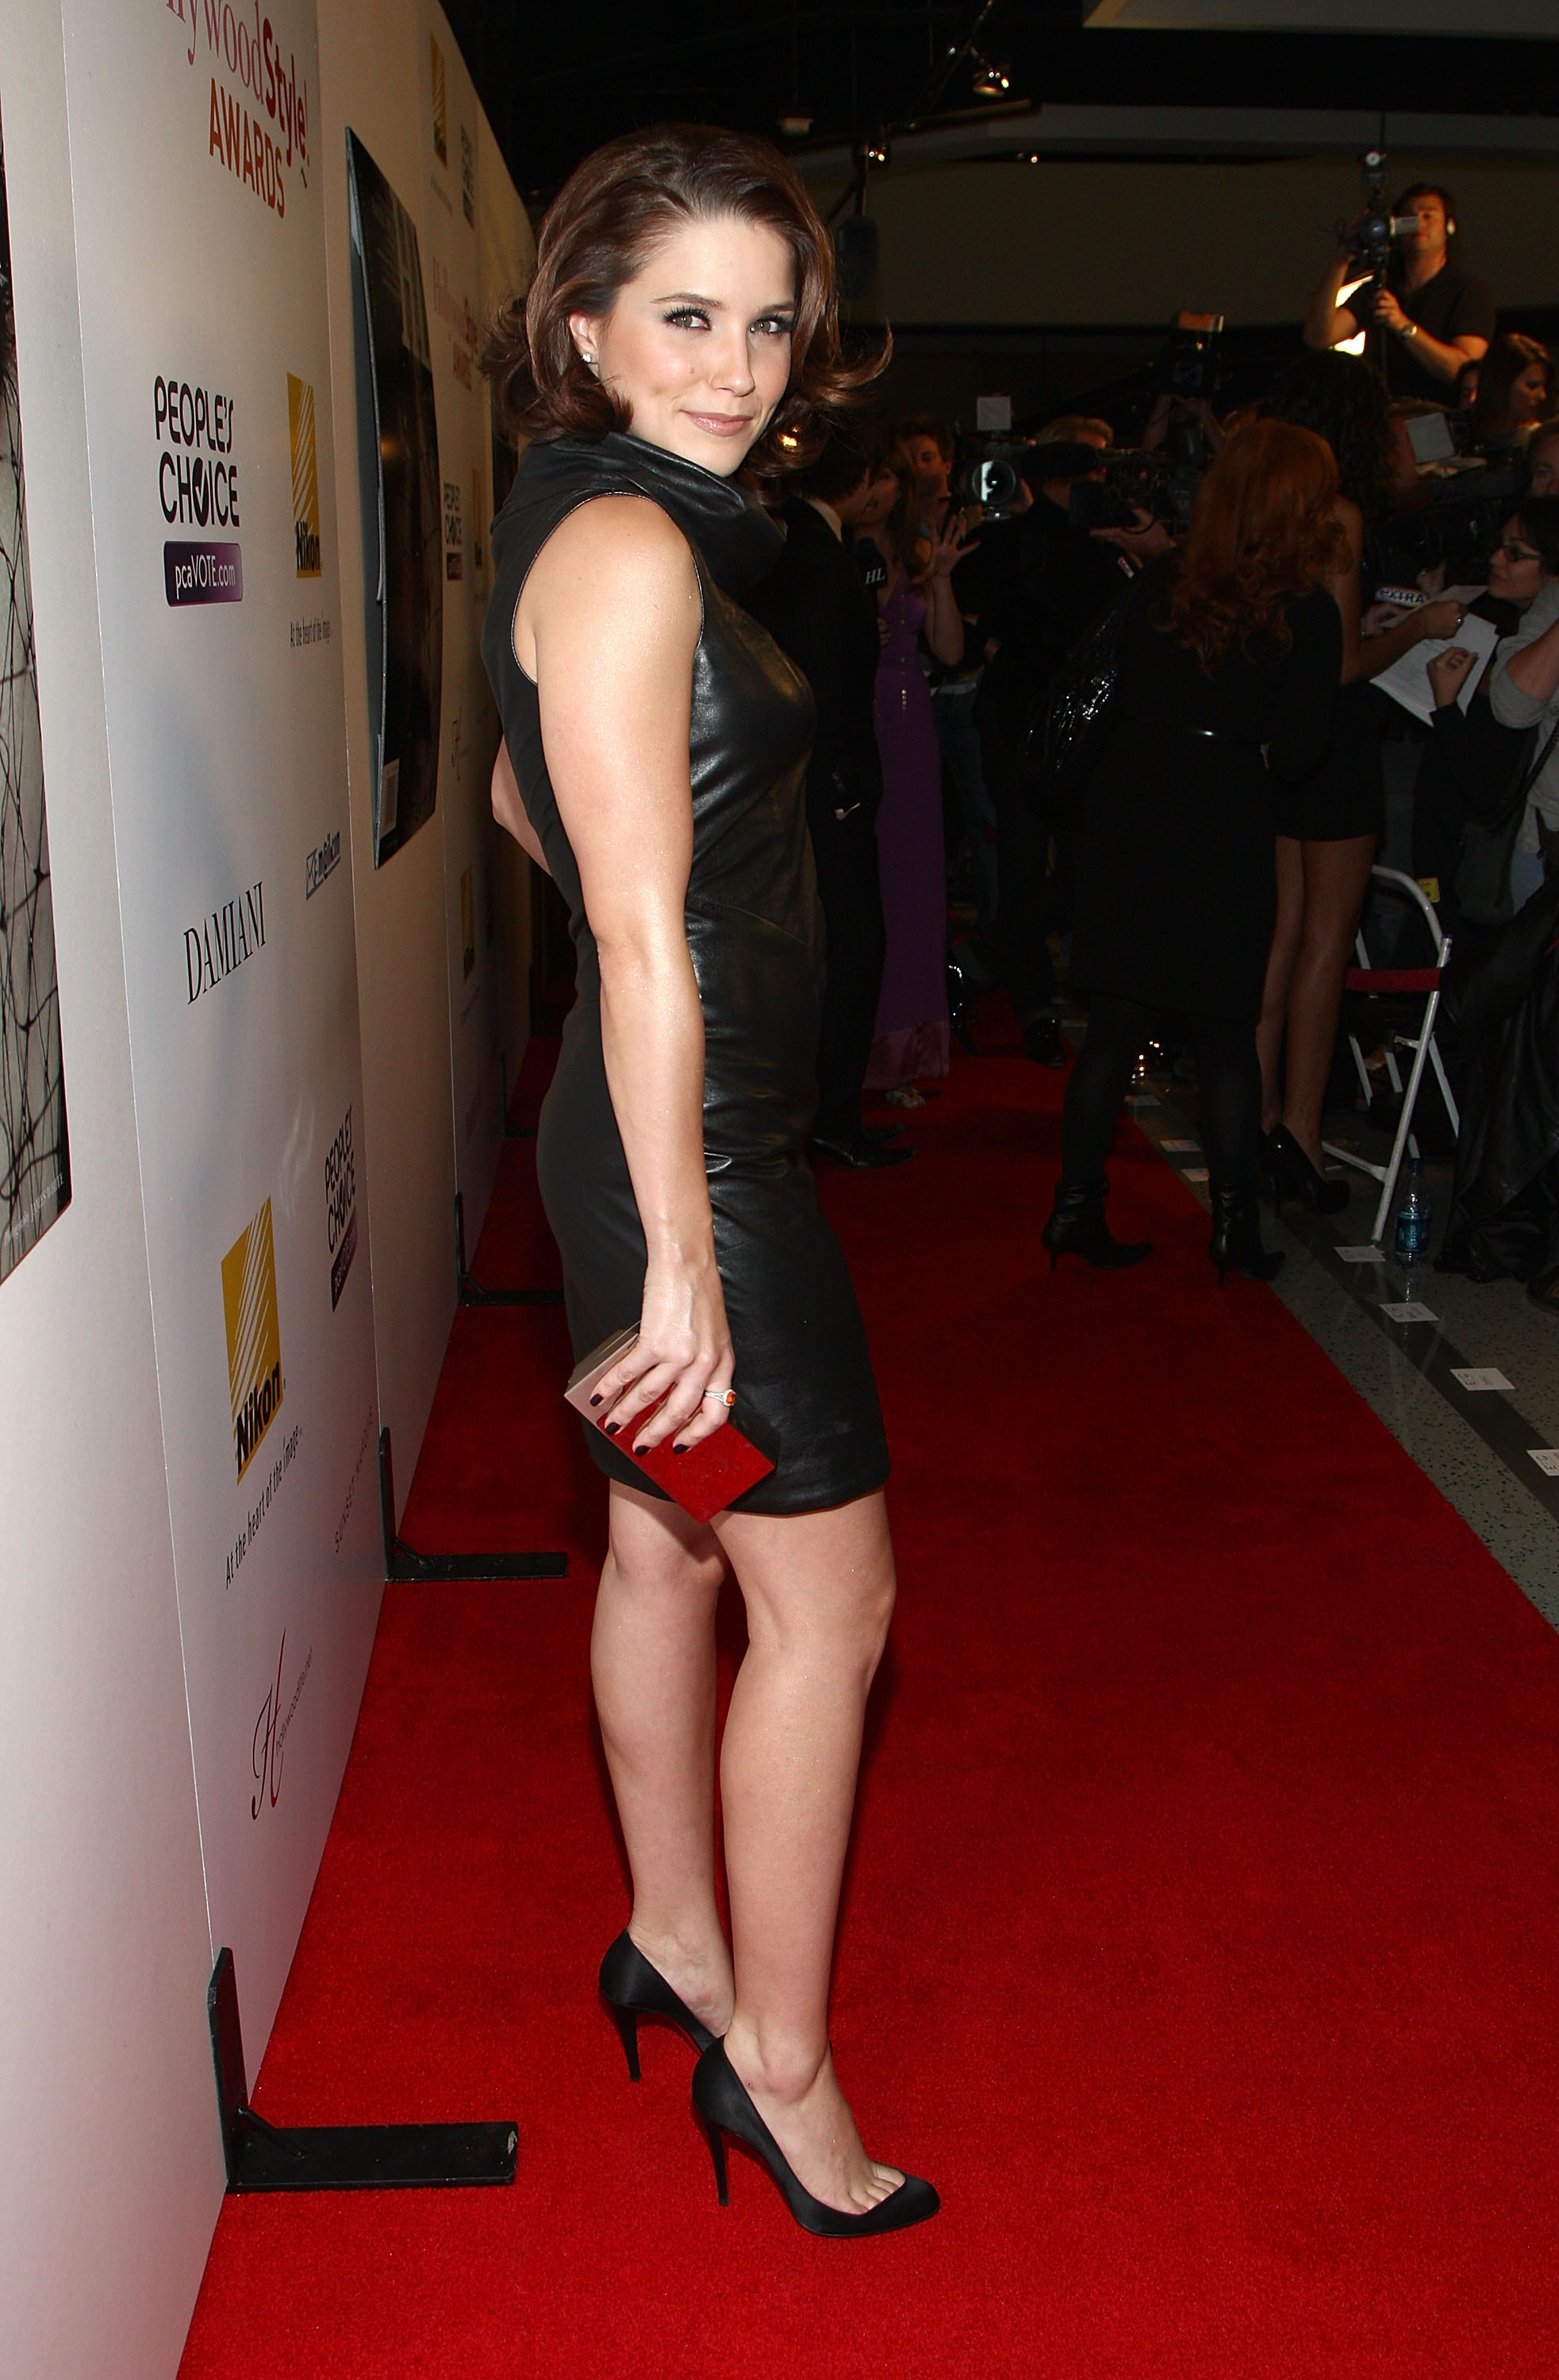 95993_Celebutopia-Sophia_Bush-Hollywood_Life6s_5th_annual_Hollywood_Style_Awards-06_122_236lo.jpg